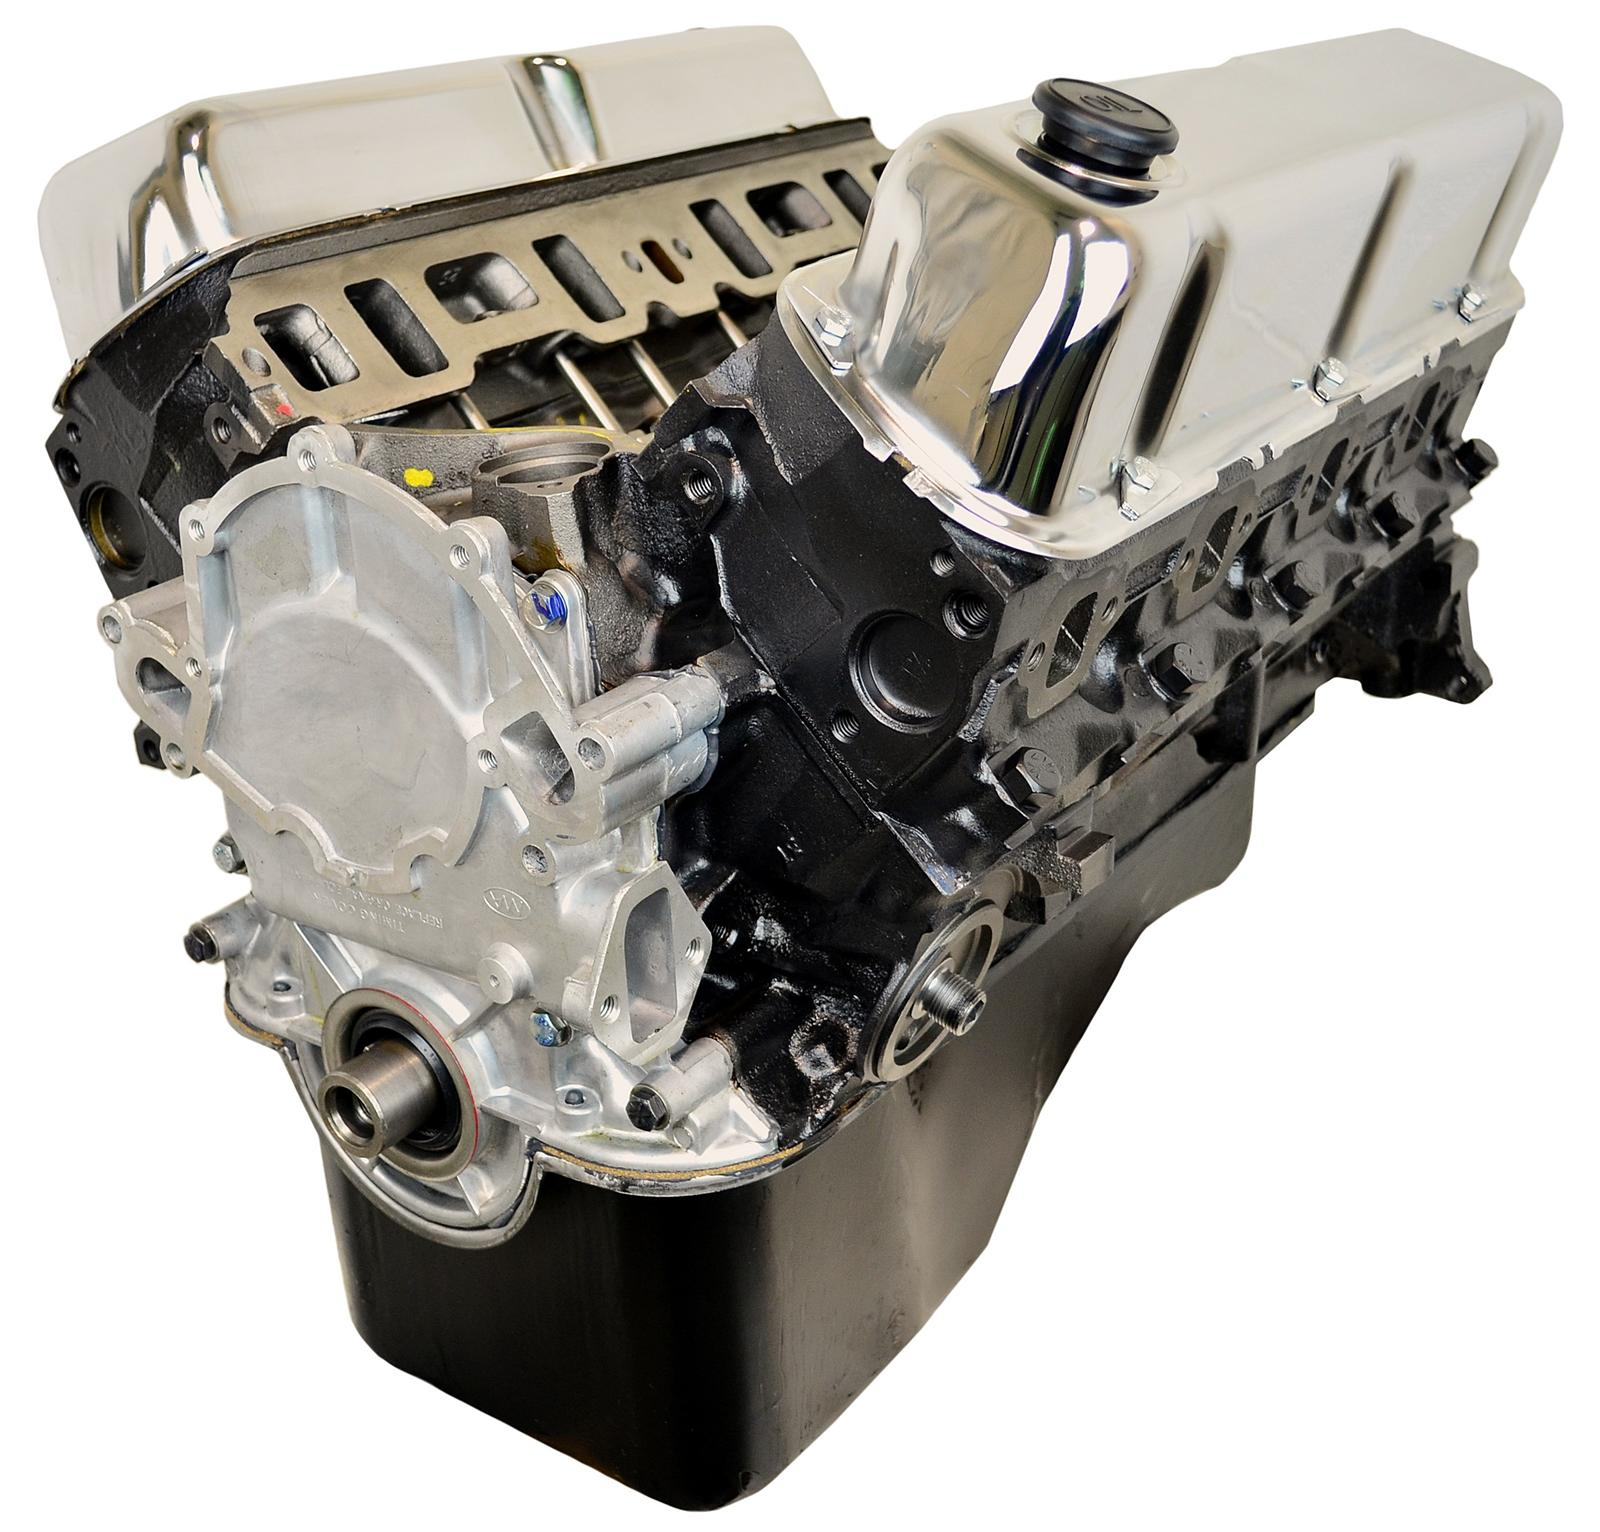 Atk high performance ford 302 300 hp stage 1 long block crate engines hp06 free shipping on orders over 99 at summit racing